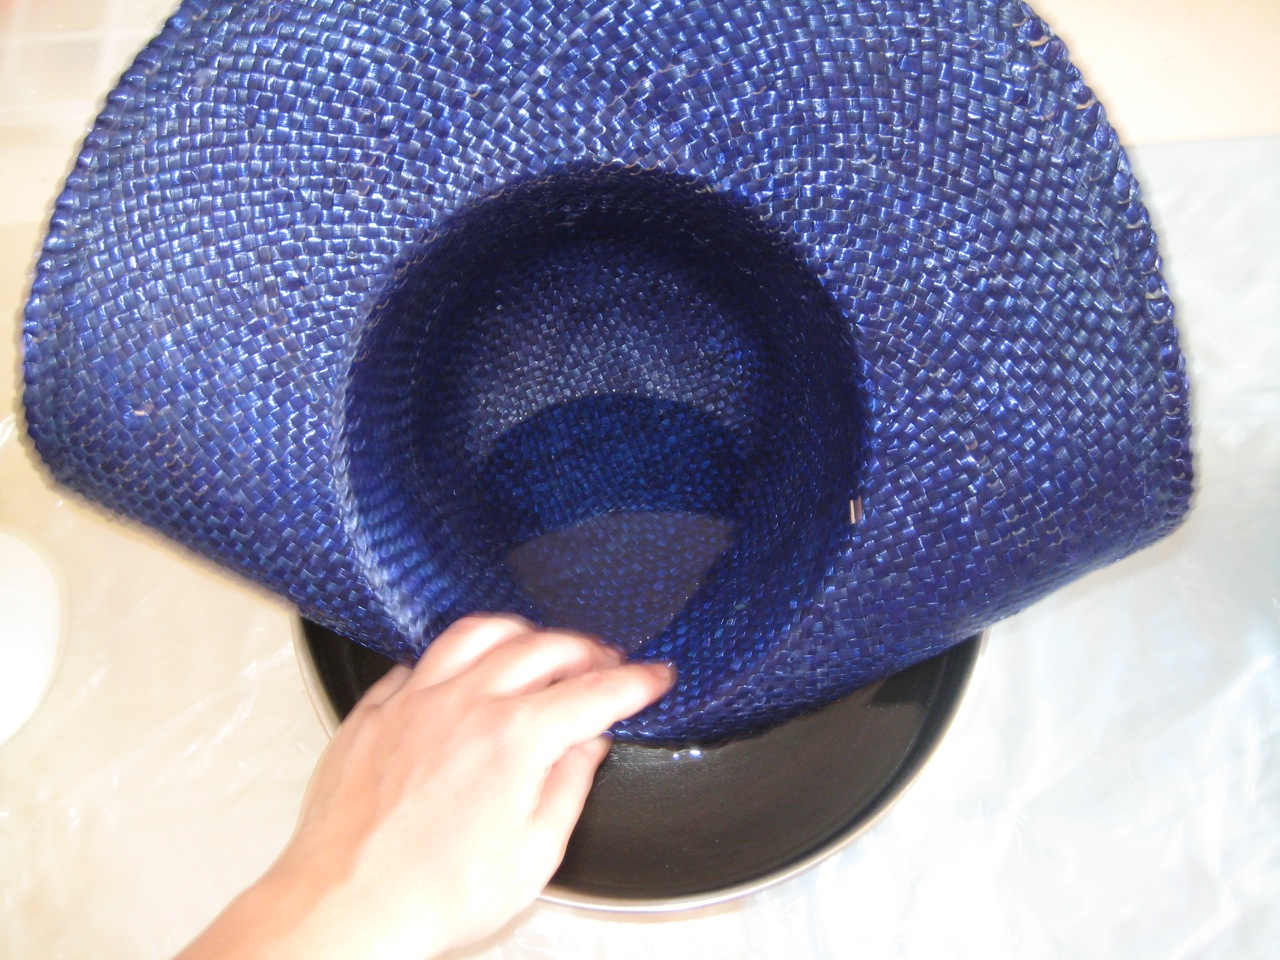 13a908af7ec Gently introduce your hat to the bowl of warm water. The straw will become  more pliable as it becomes wet